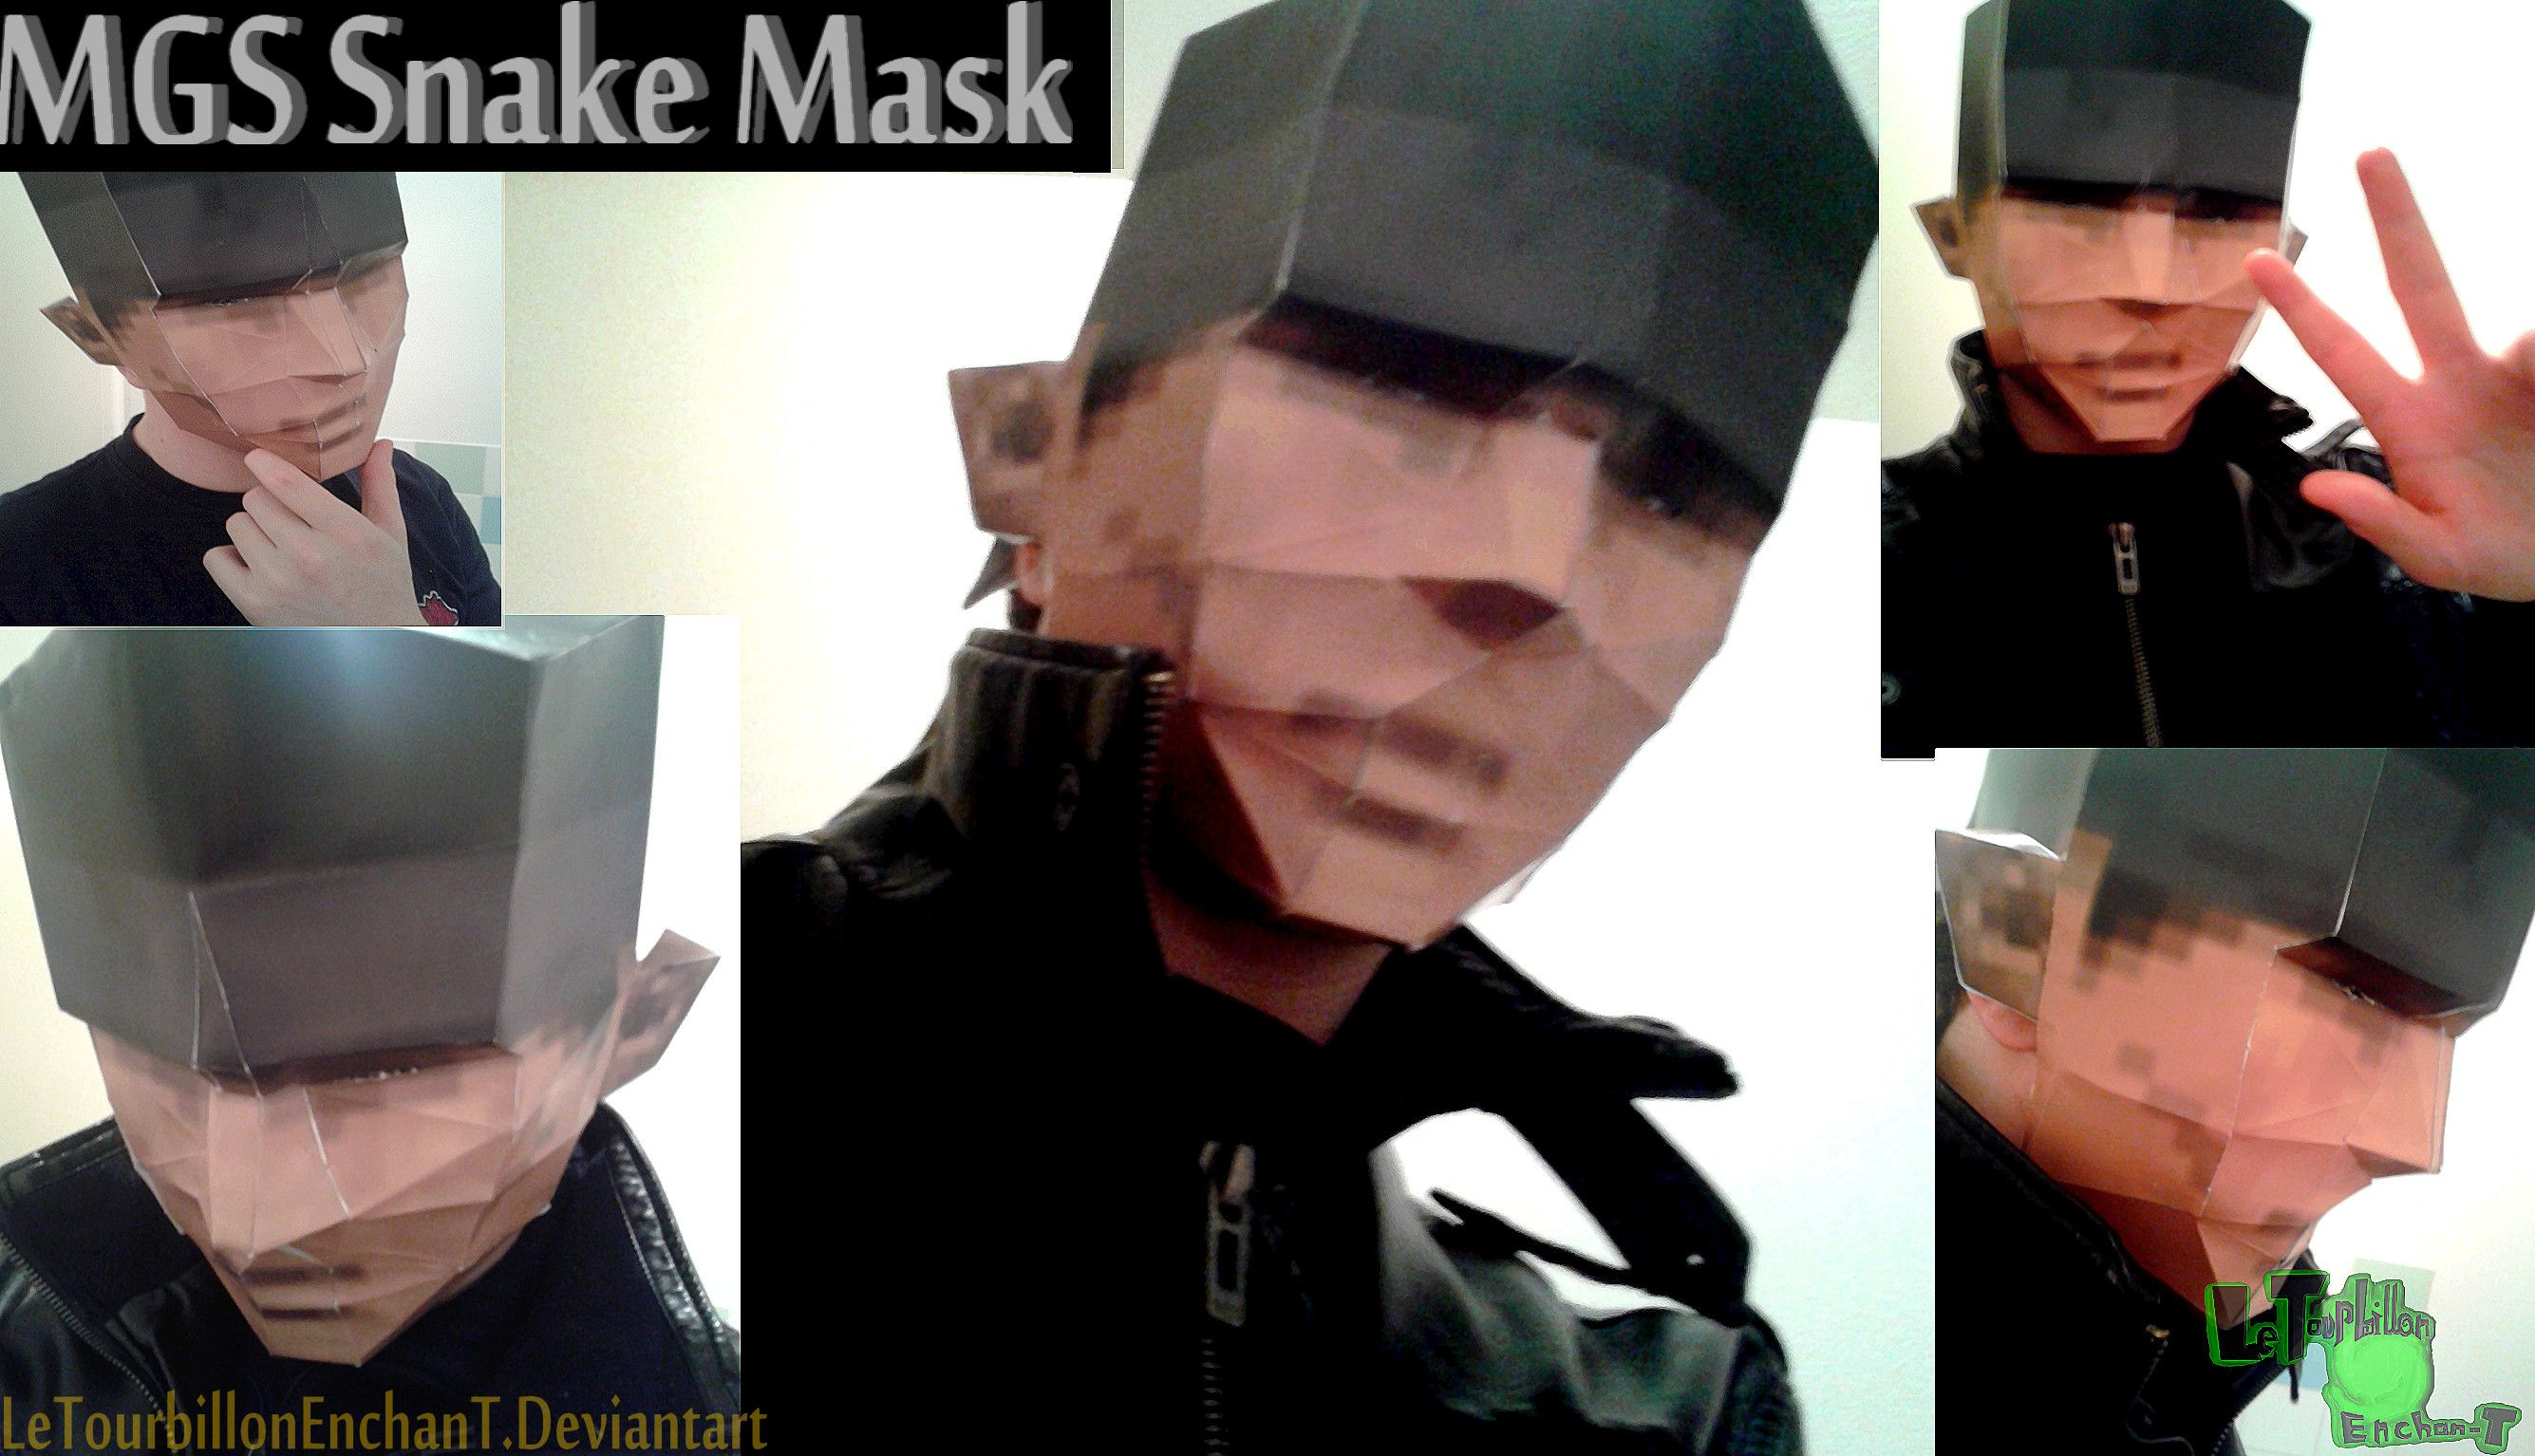 Metal Gear Solid - Snake Mask - LTE-T Papercraft by ...